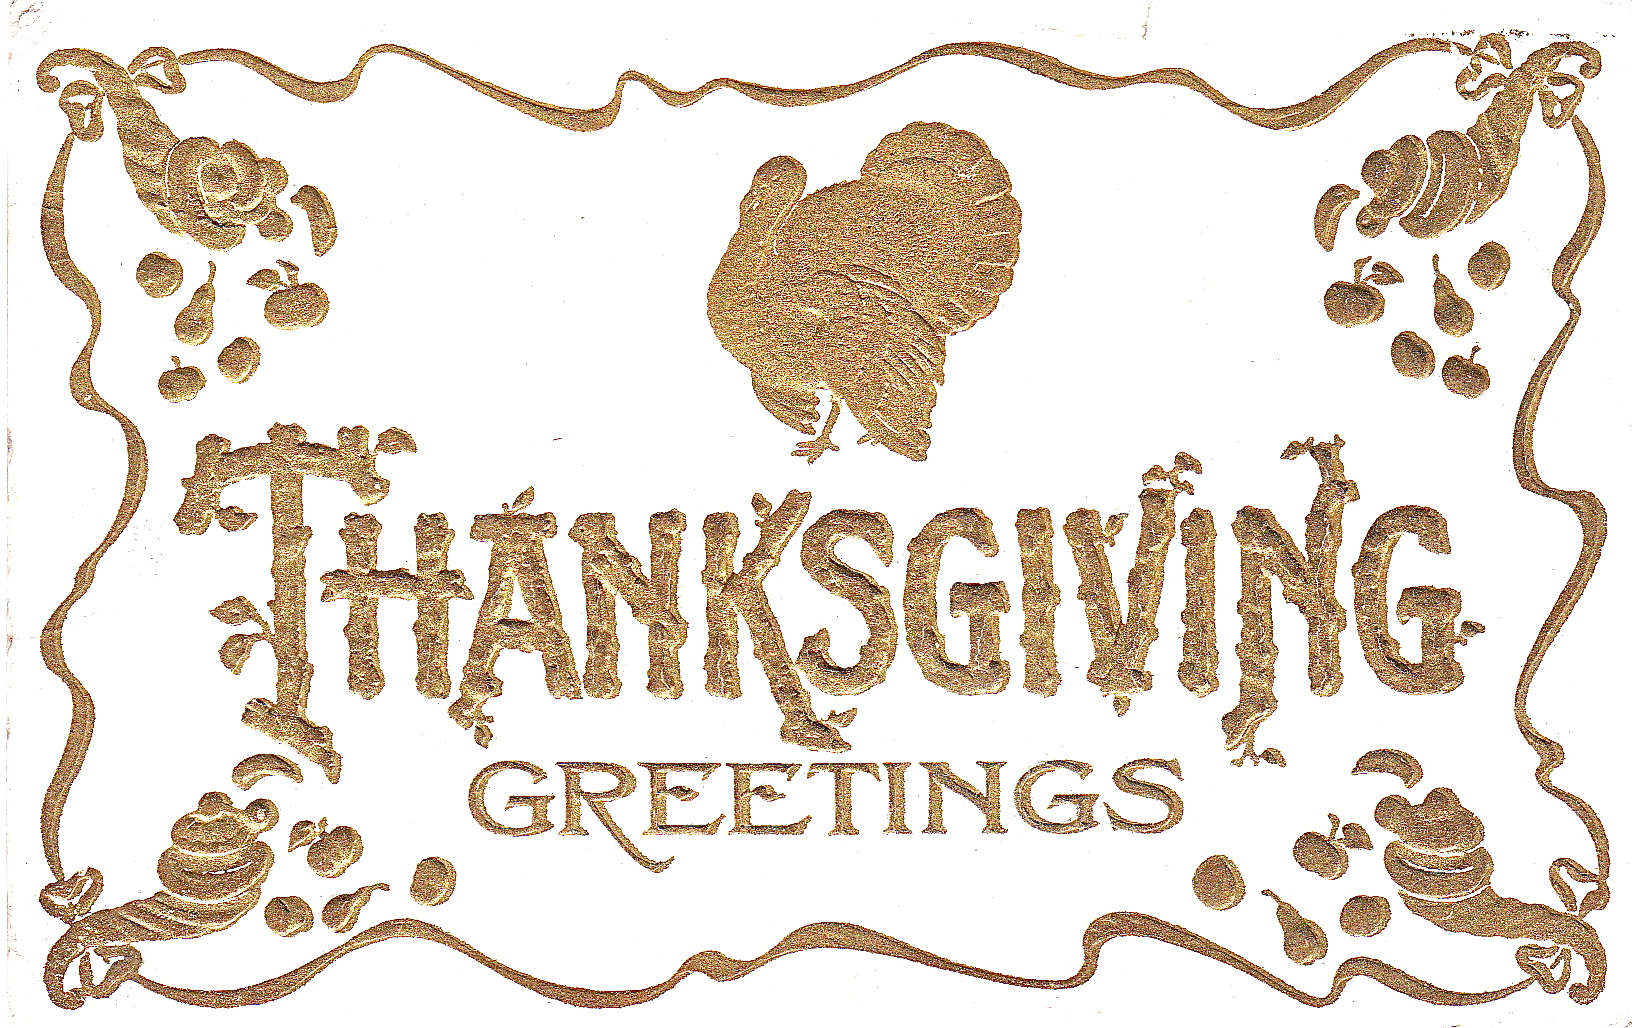 ThanksgivingGreeting